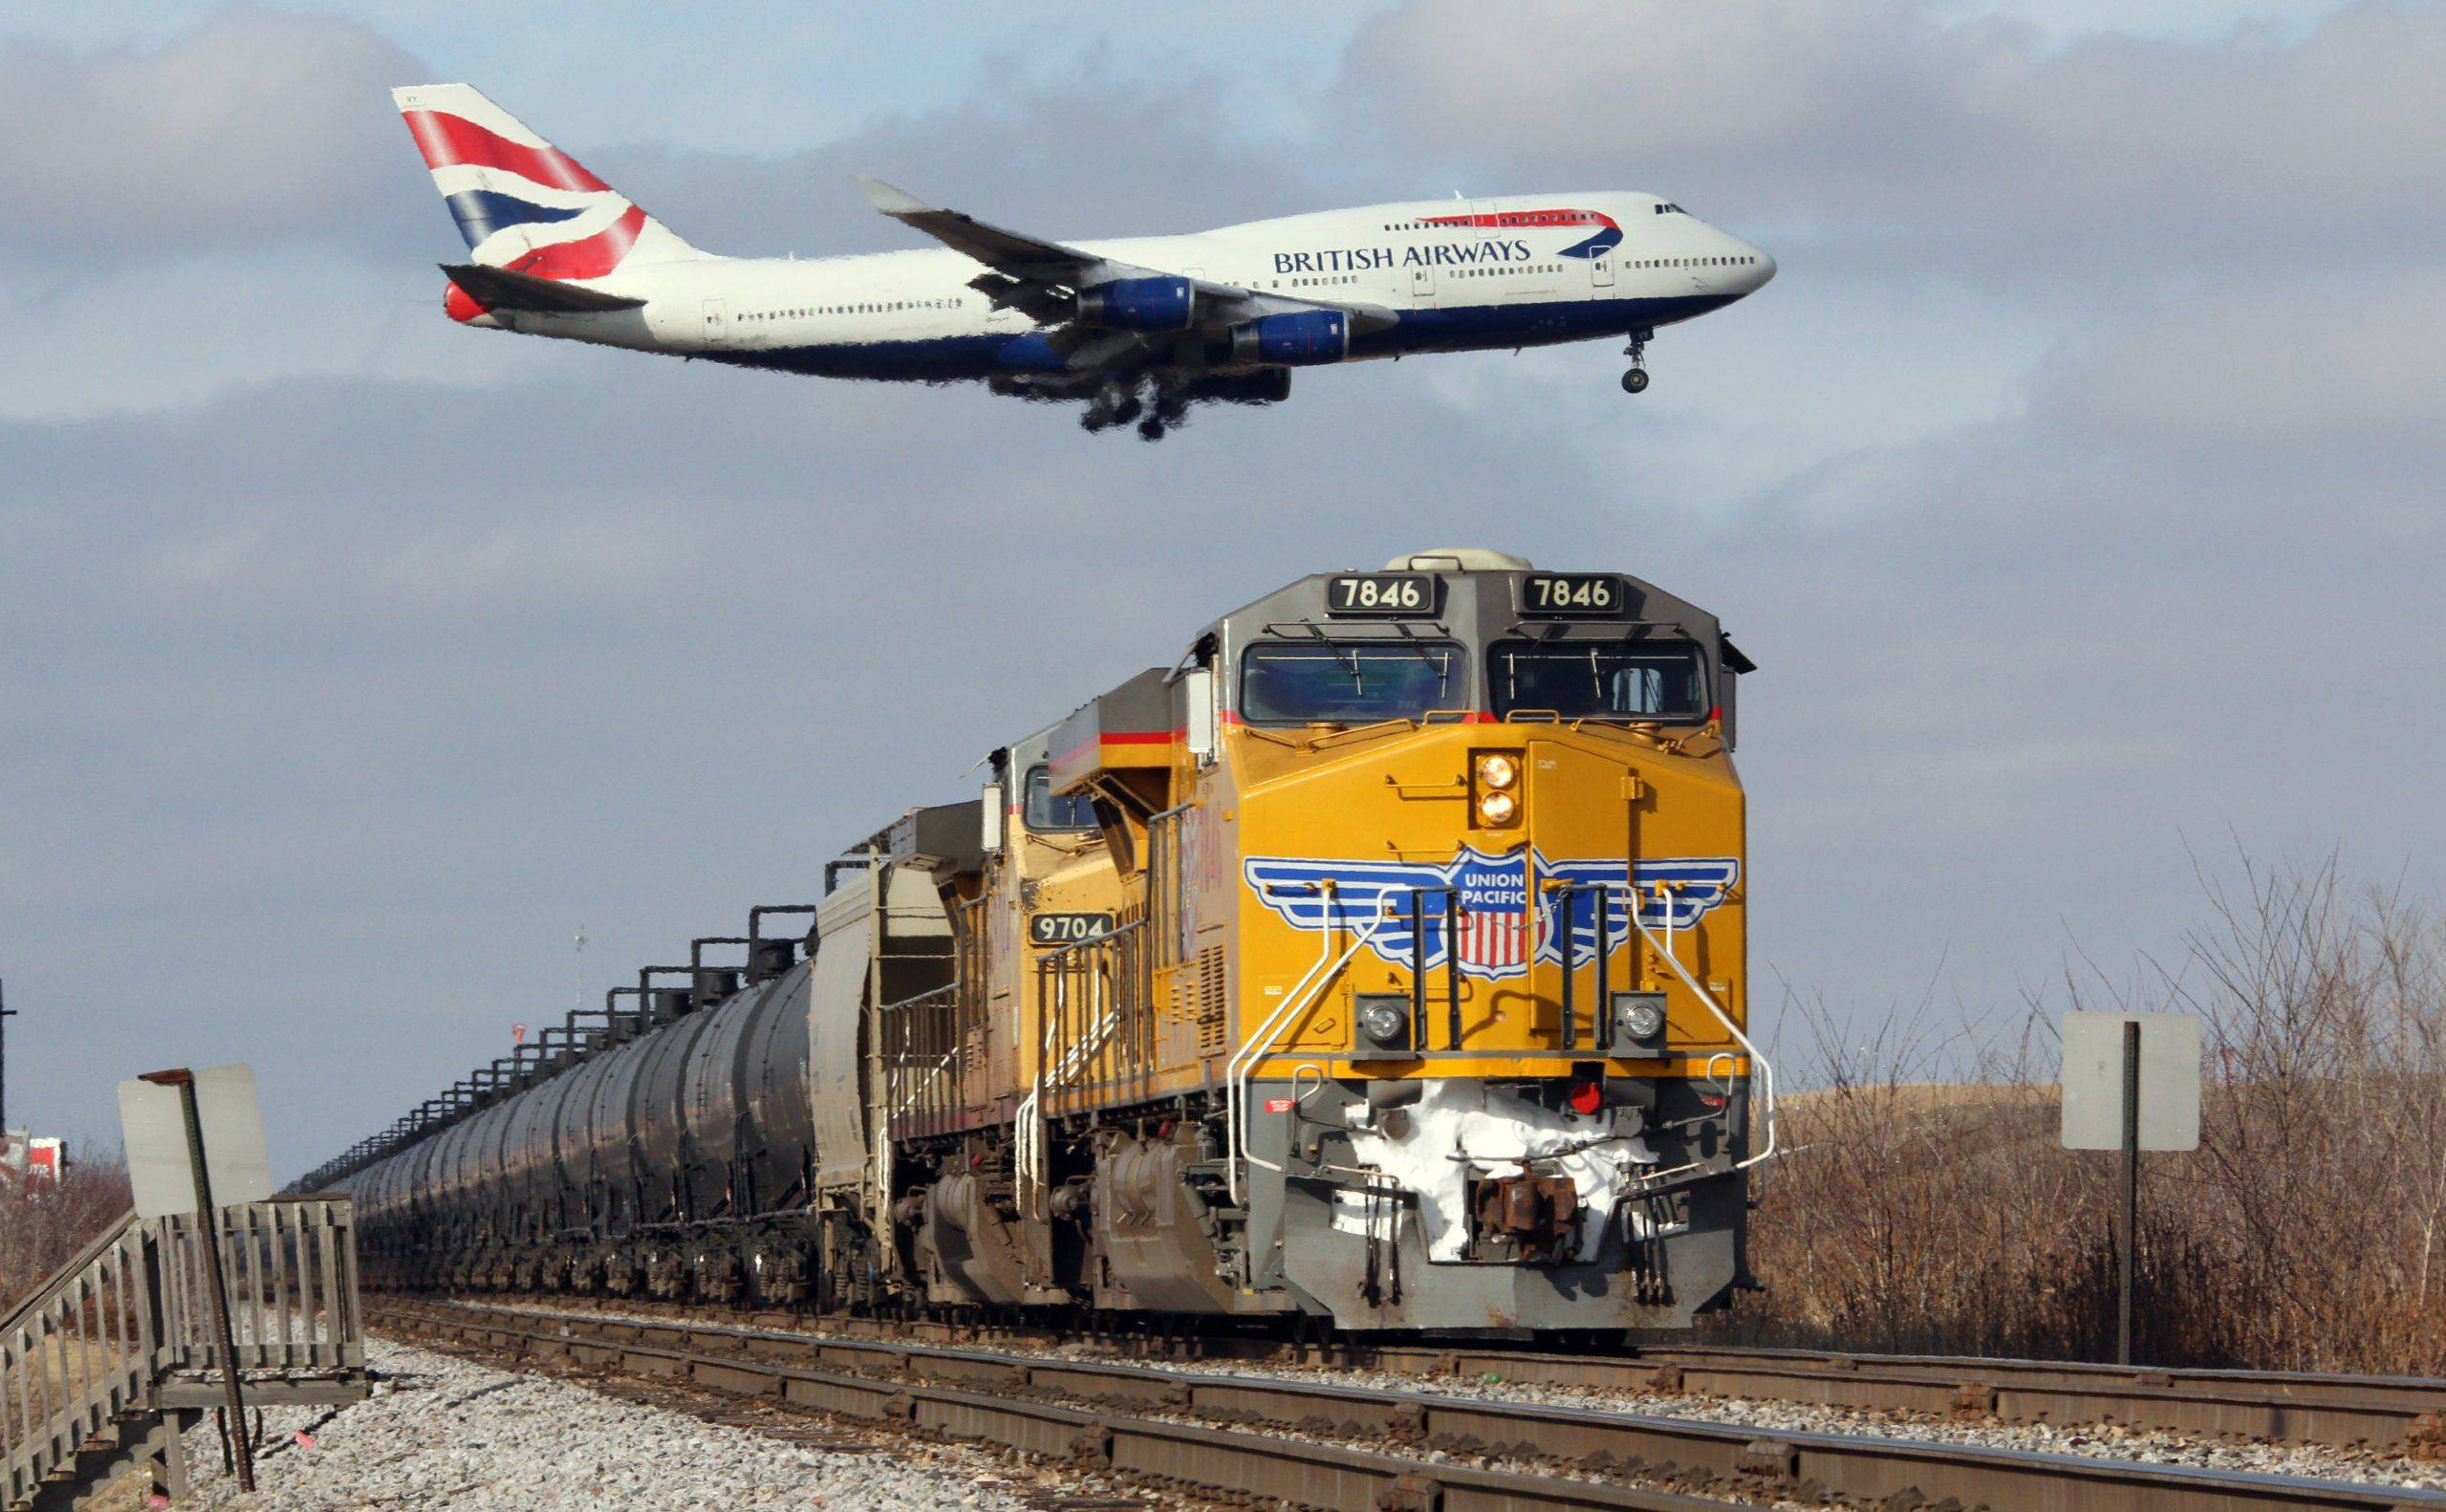 Larry Pearlman of NapervilleI took this photo of a British Airways Boeing 747 and a Union Pacific ethanol train yesterday in Bensenville, Illinois. The approach for the runway at O'Hare goes right over the Union Pacific railroad tracks. What makes this appear more extreme is the use of a very large (100-400) zoom lens. This is a great spot for plane spotters and train watchers alike.